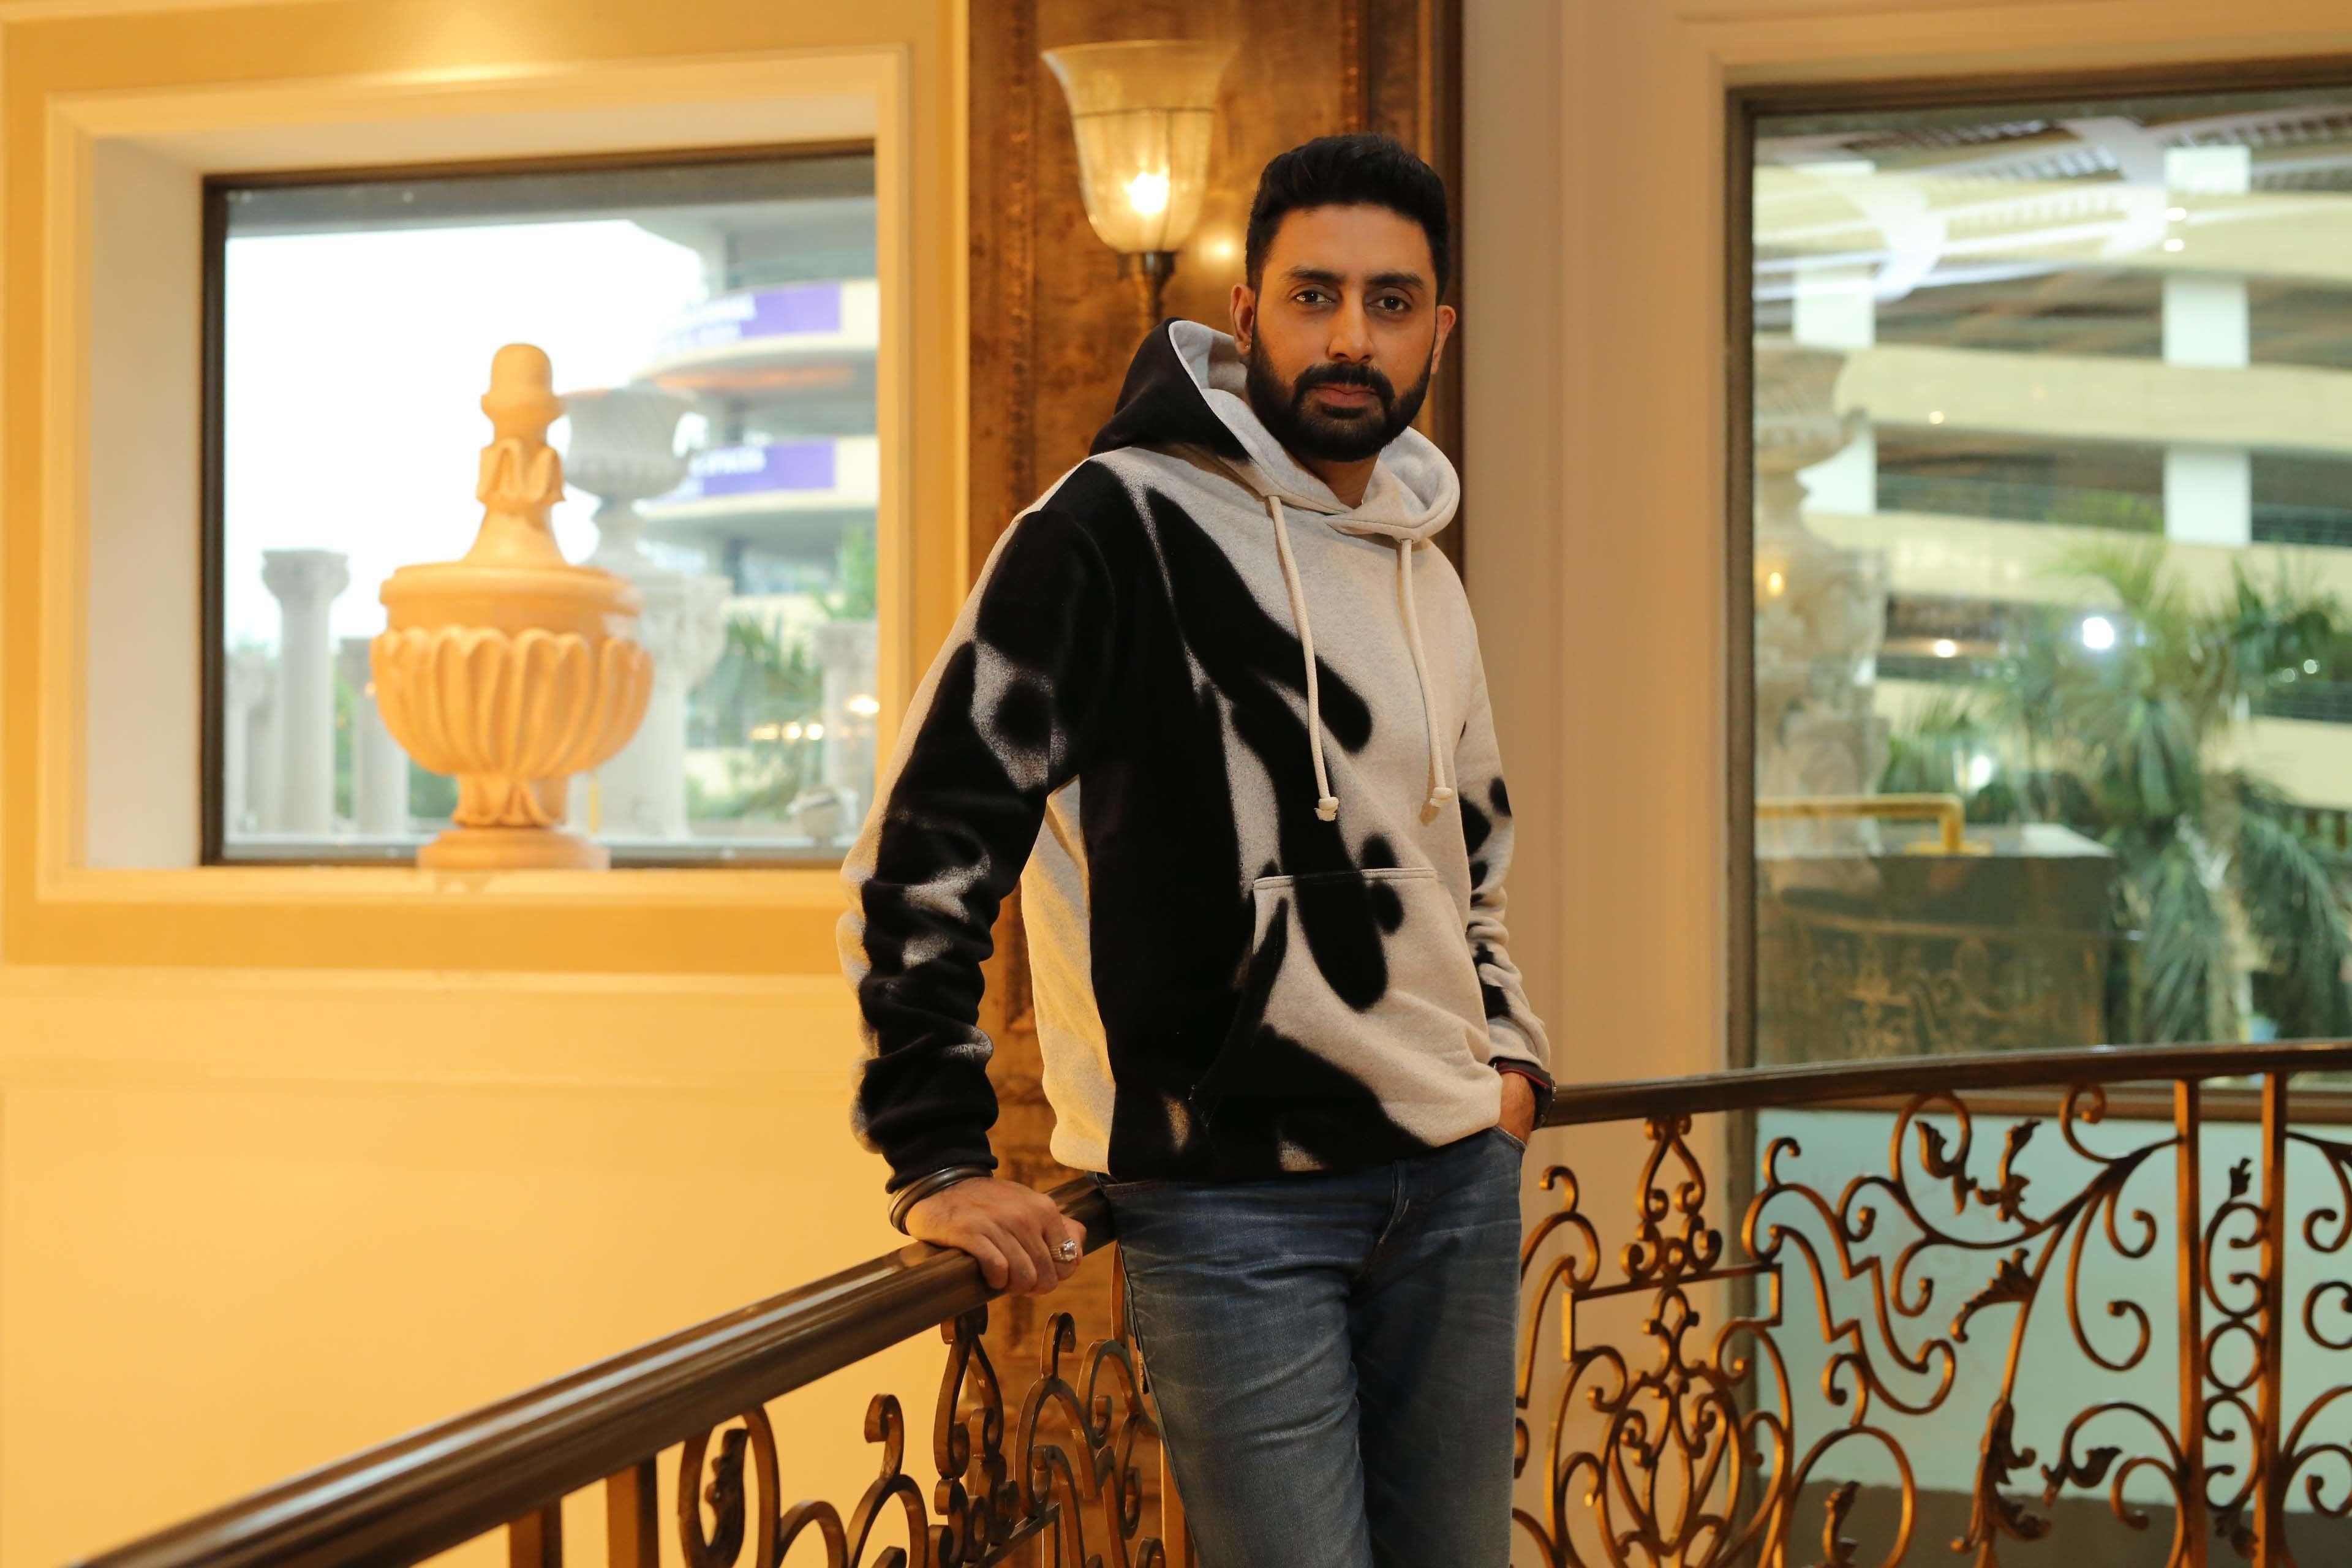 Bollywood Star Abhishek Bachchan Praises India's 'Wonderful' Gay Rights